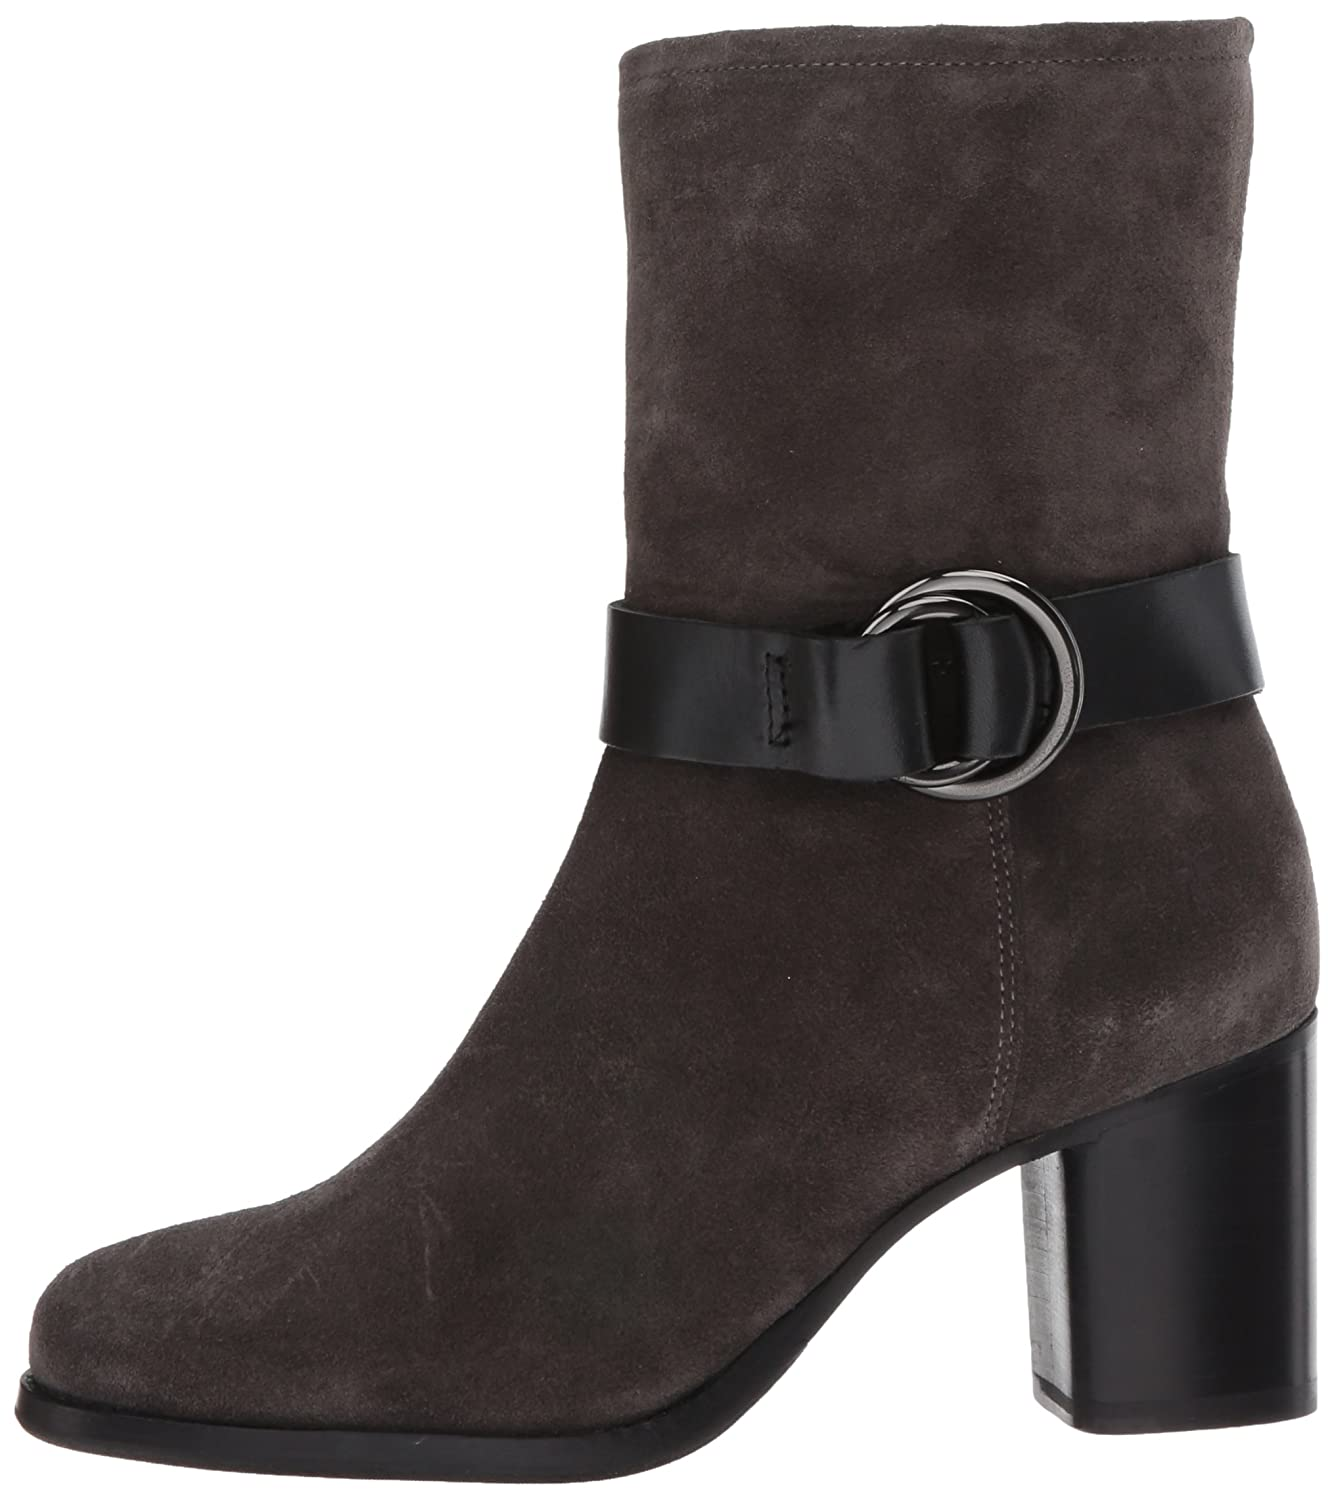 FRYE Women's Addie Harness Mid Boot B01MTYO8AZ 11 B(M) US|Grigio Soft Oiled Suede